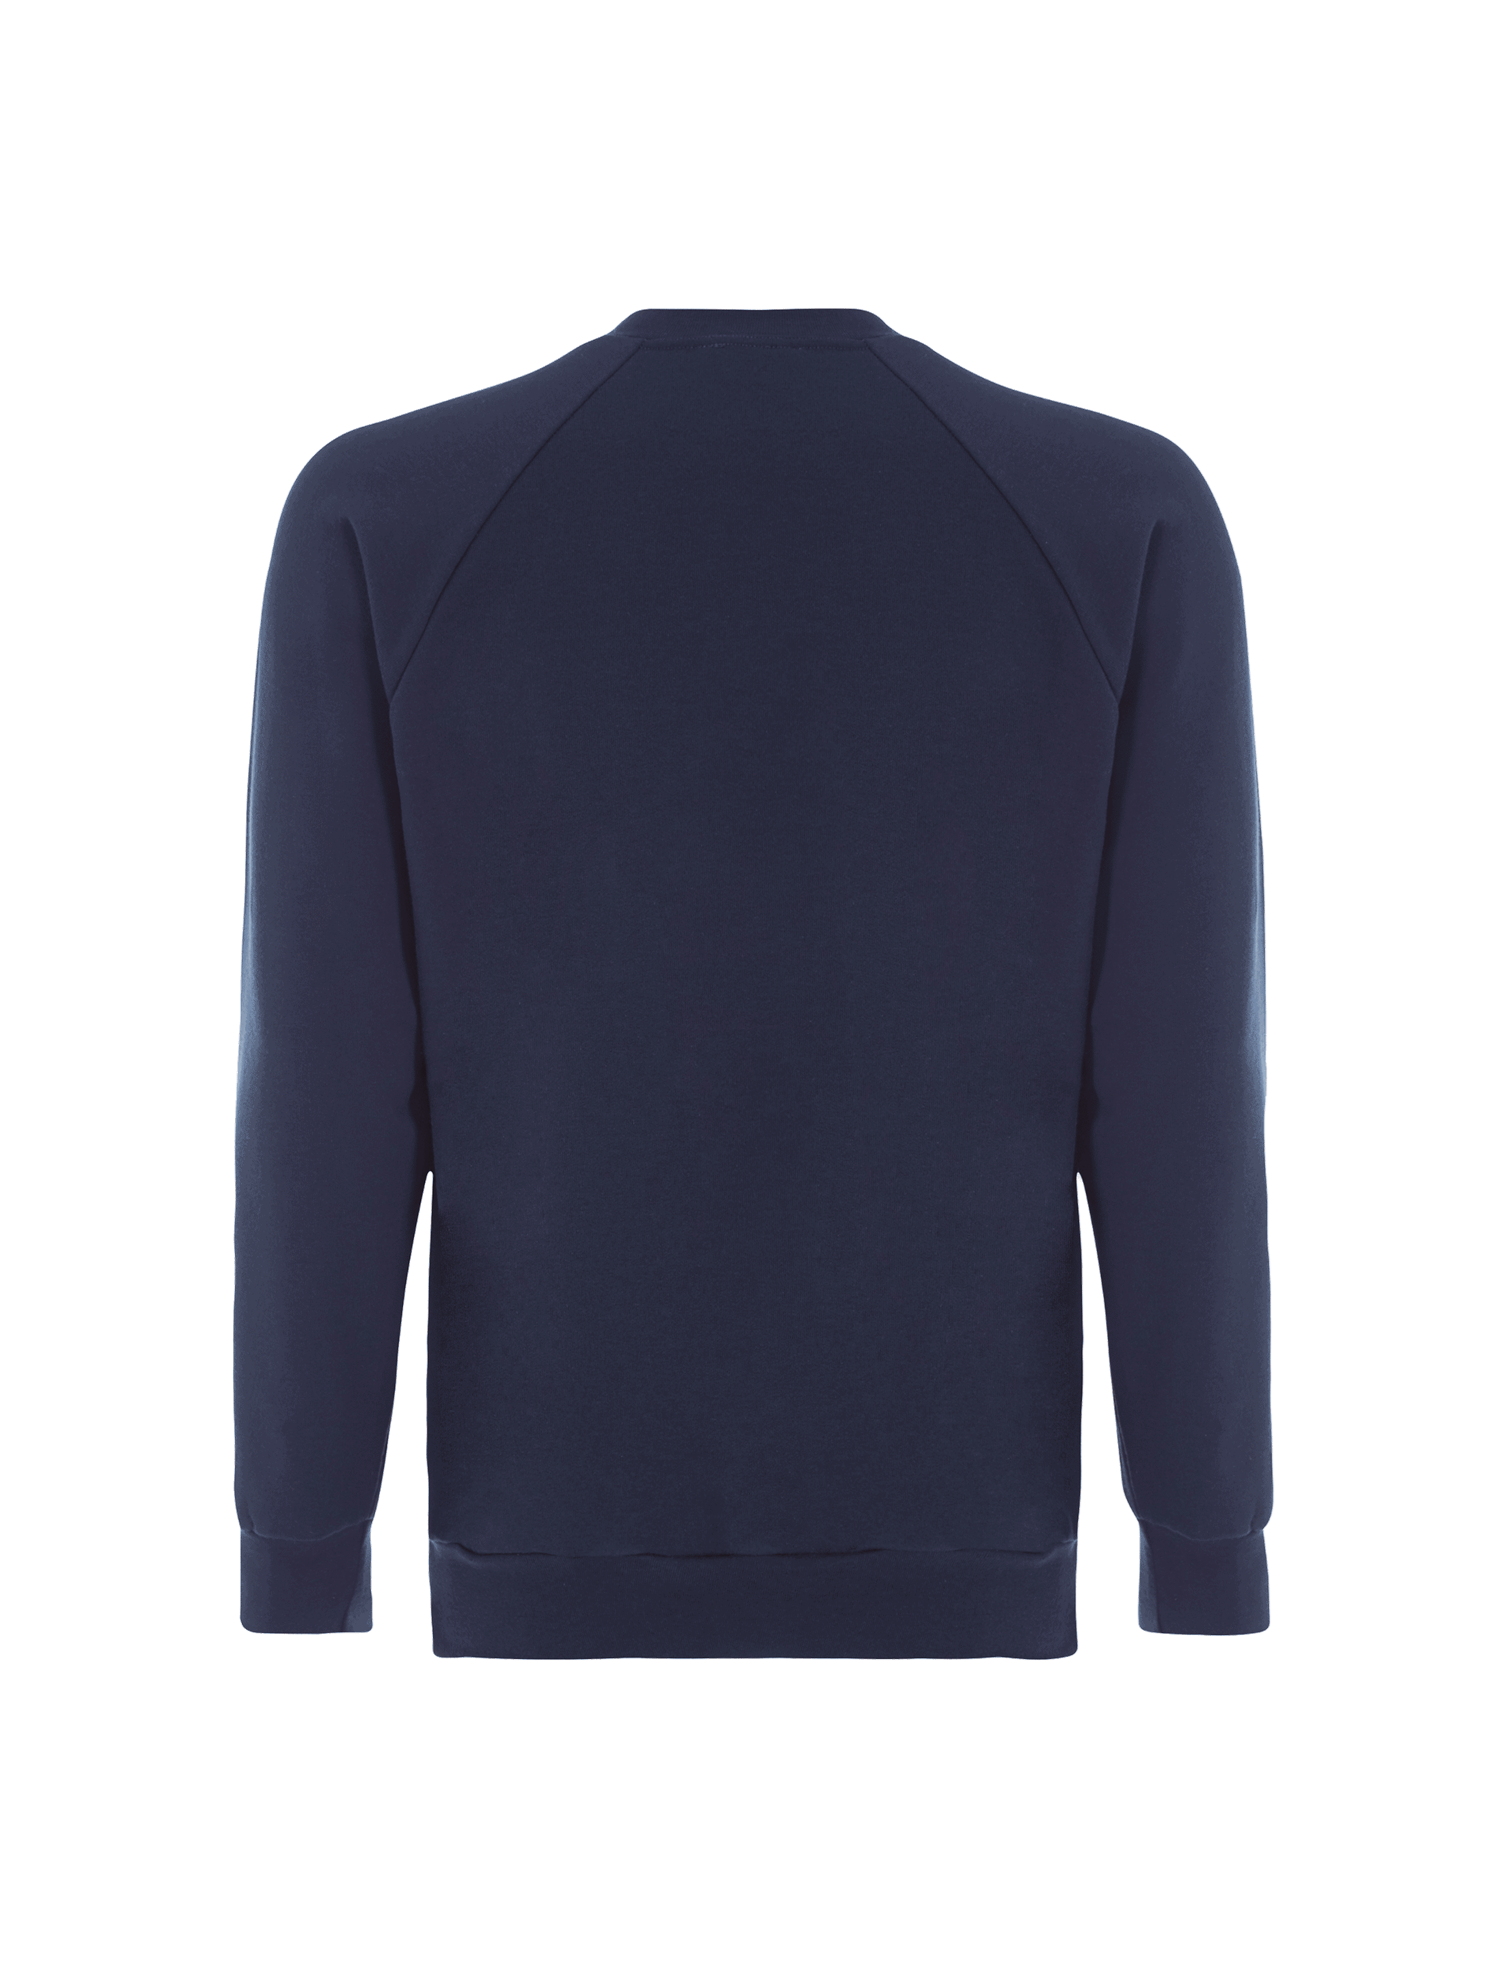 Picture of Protal® Long Sleeve T-Shirt - Navy